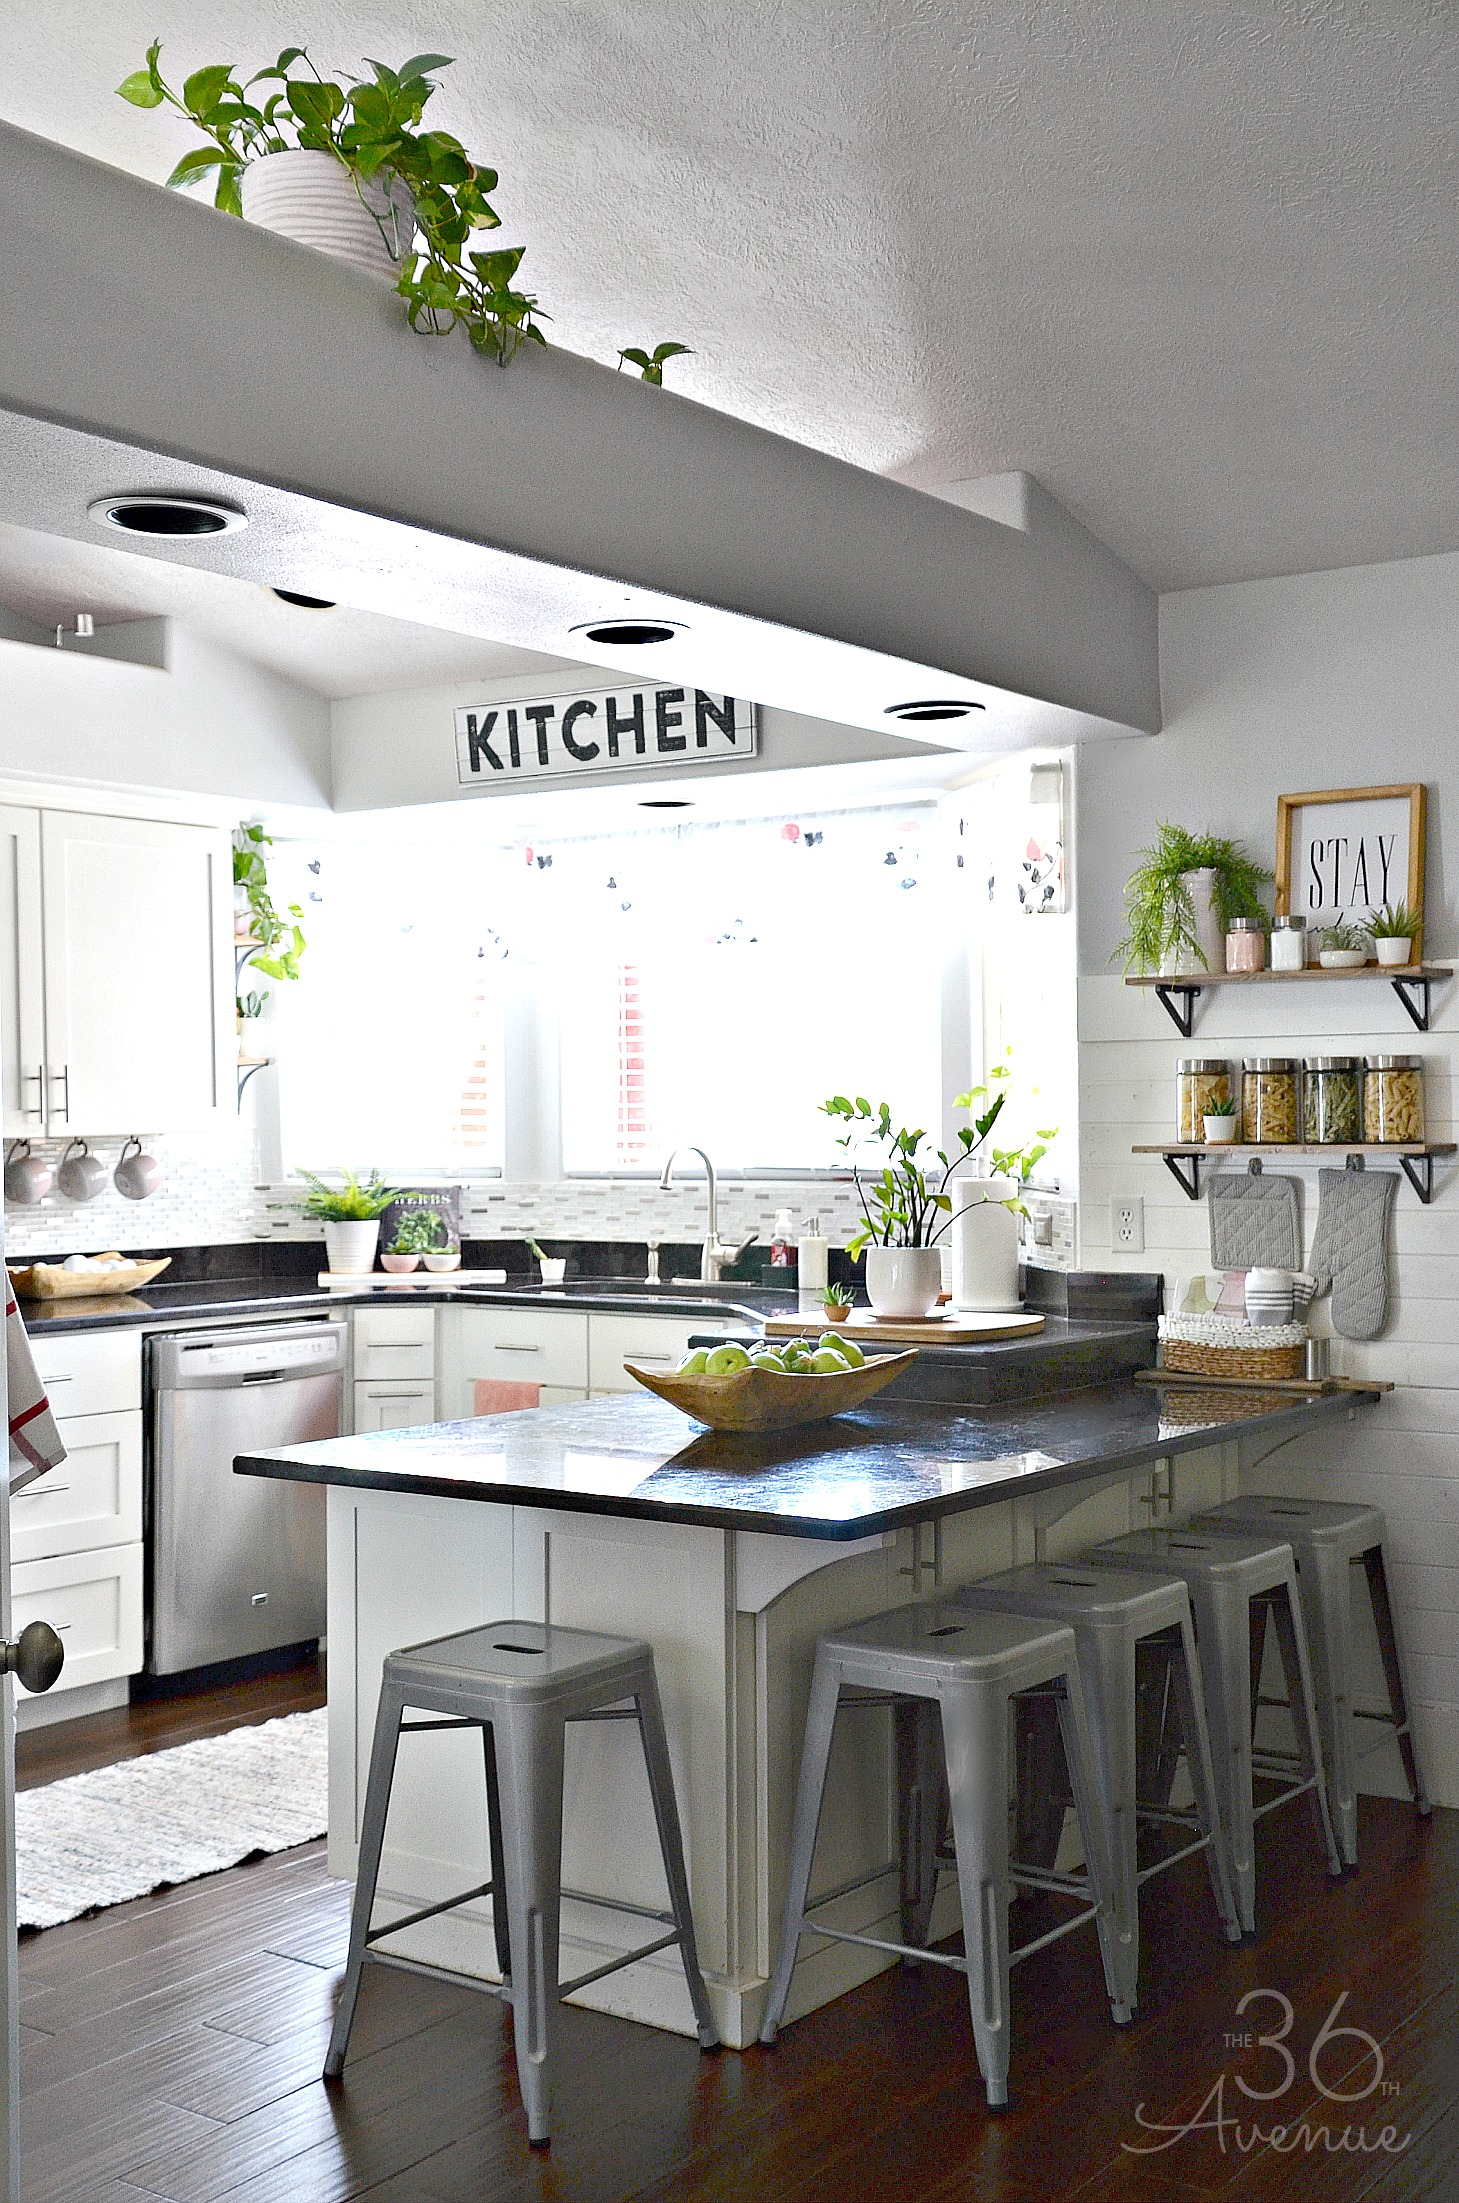 White Kitchen Decor Ideas - How to add color to a white kitchen.